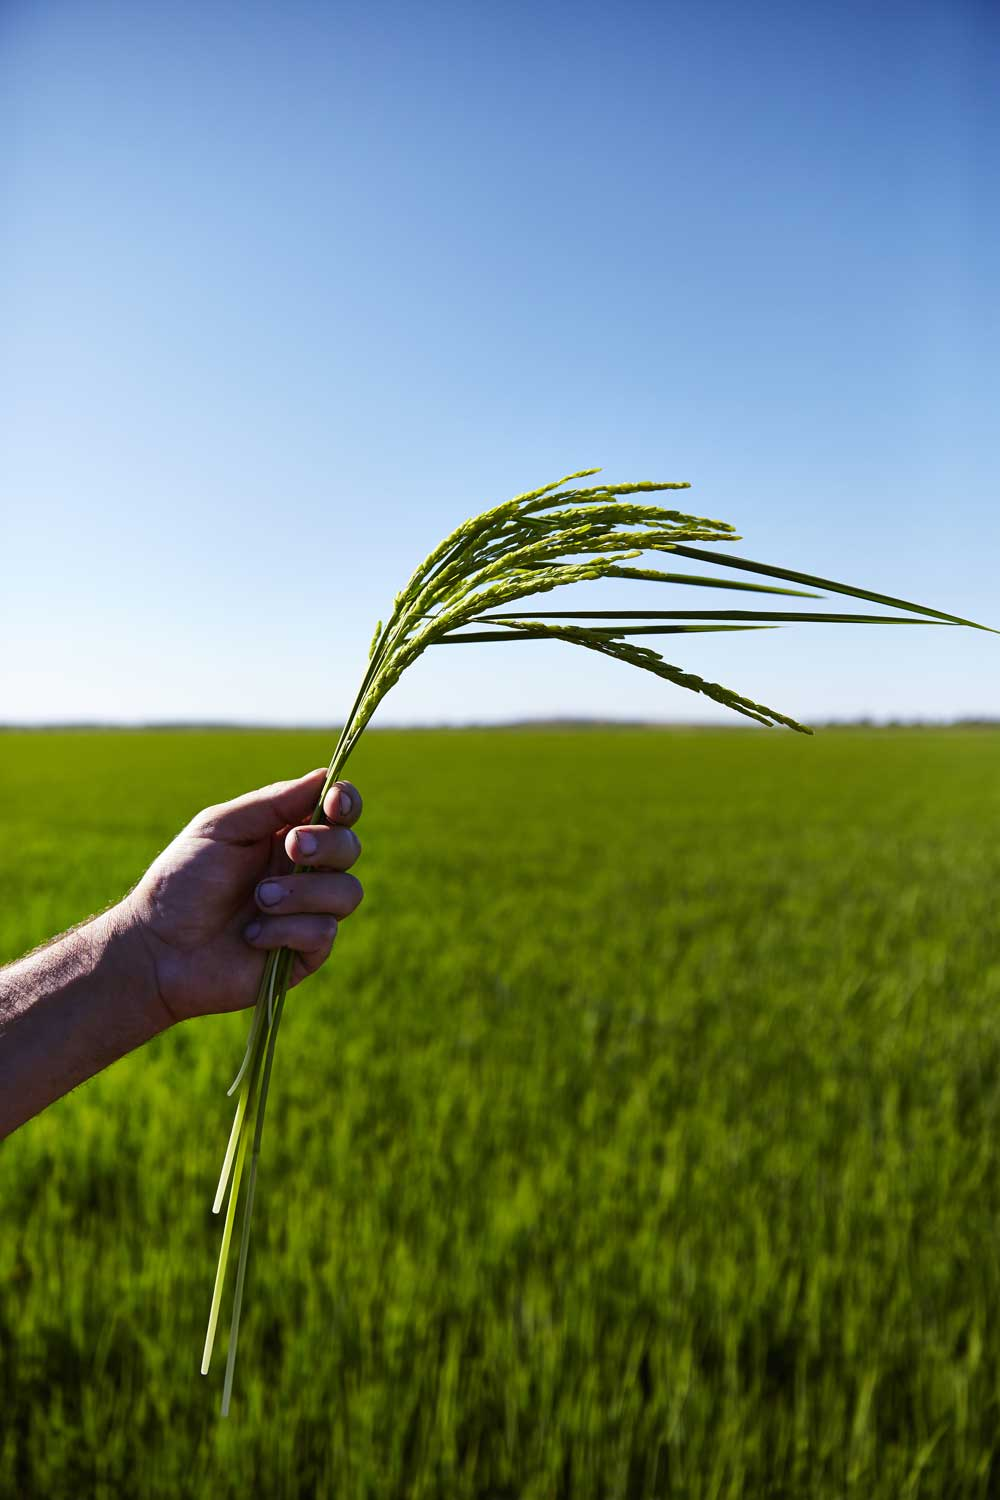 SunRice is the only rice company in the world that is vertically integrated, a key differentiator ensuring full traceability back to the farm. -